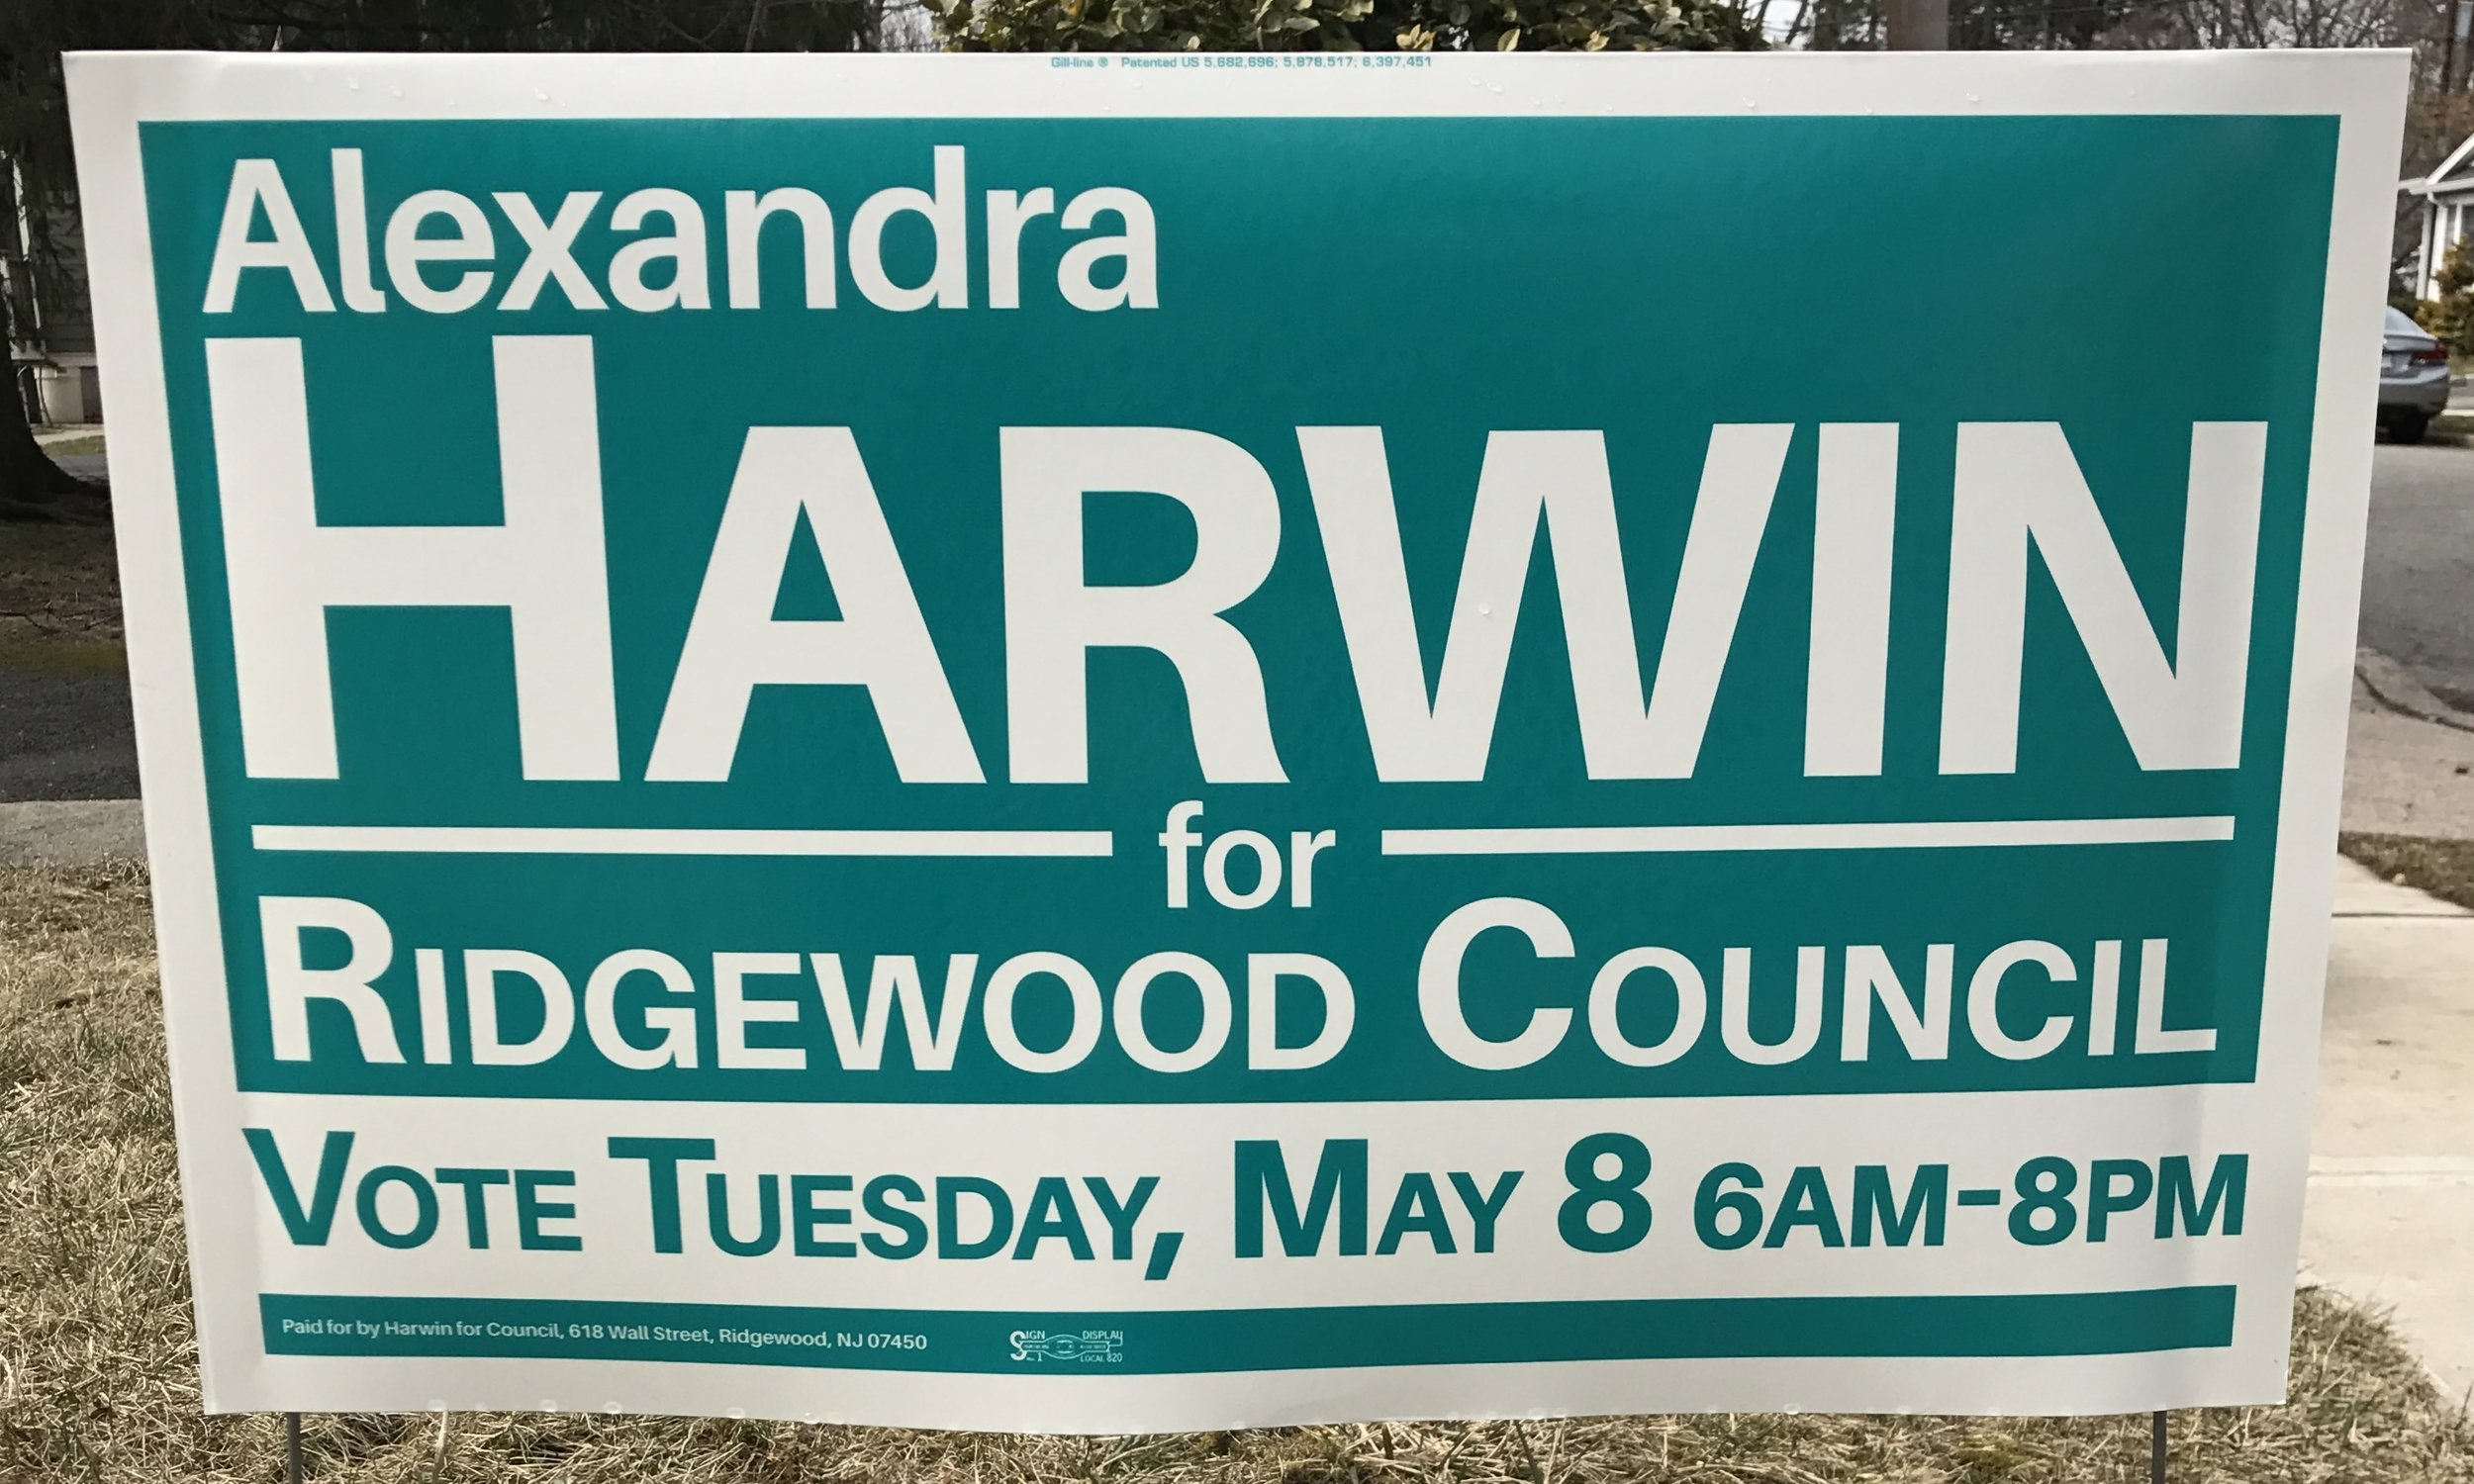 Get a Lawn Sign - Be an influencer! Show your support for responsible, inclusive Ridgewood leadership!